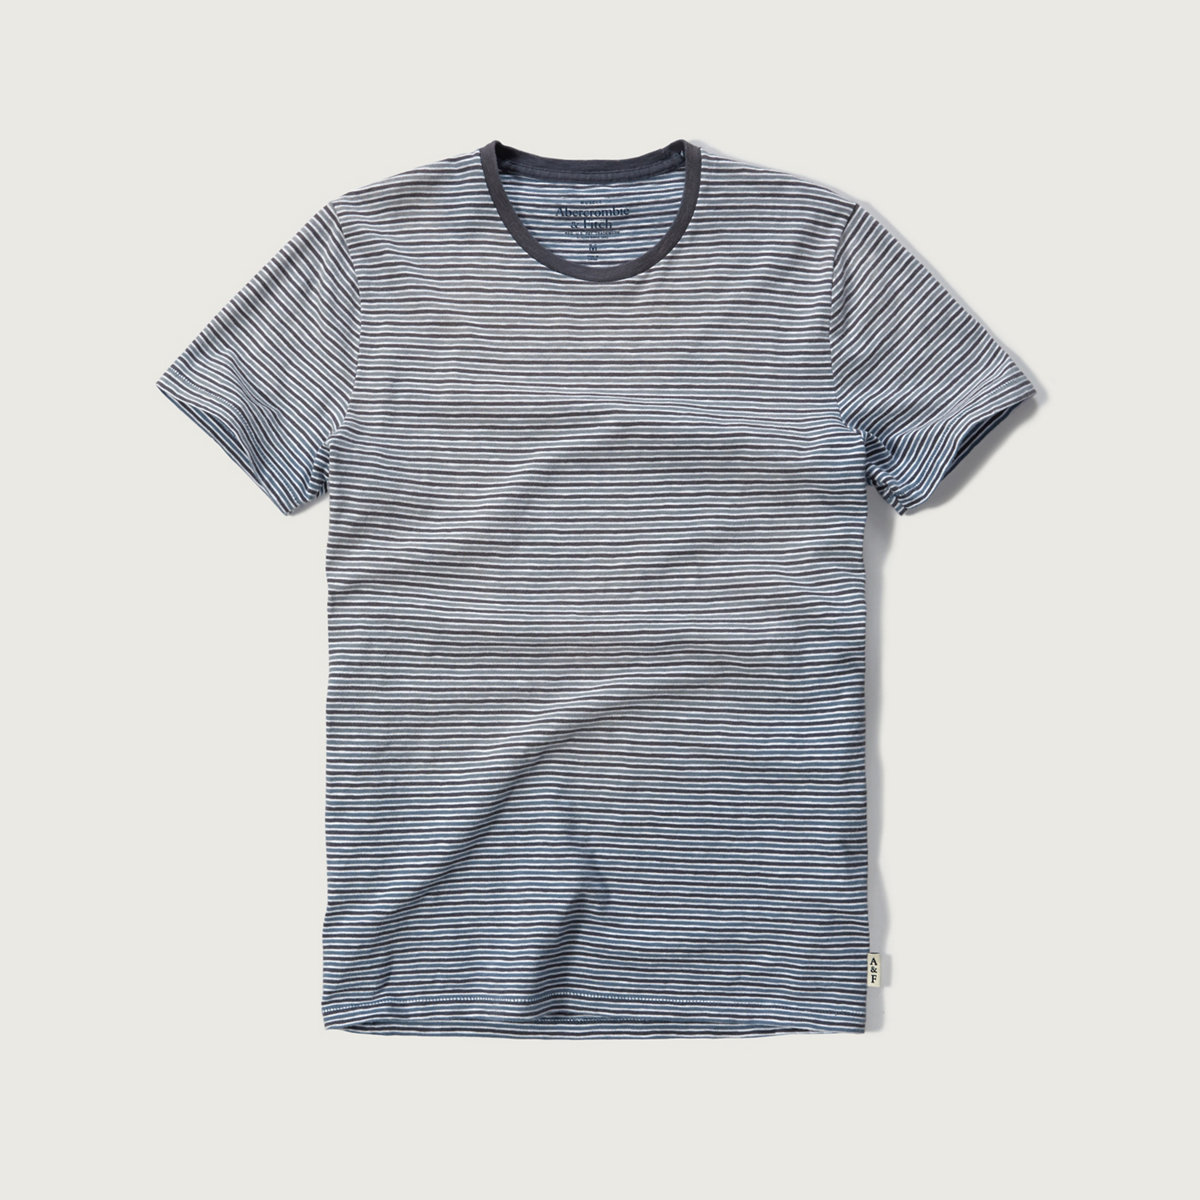 Washed Effect Stripe Tee